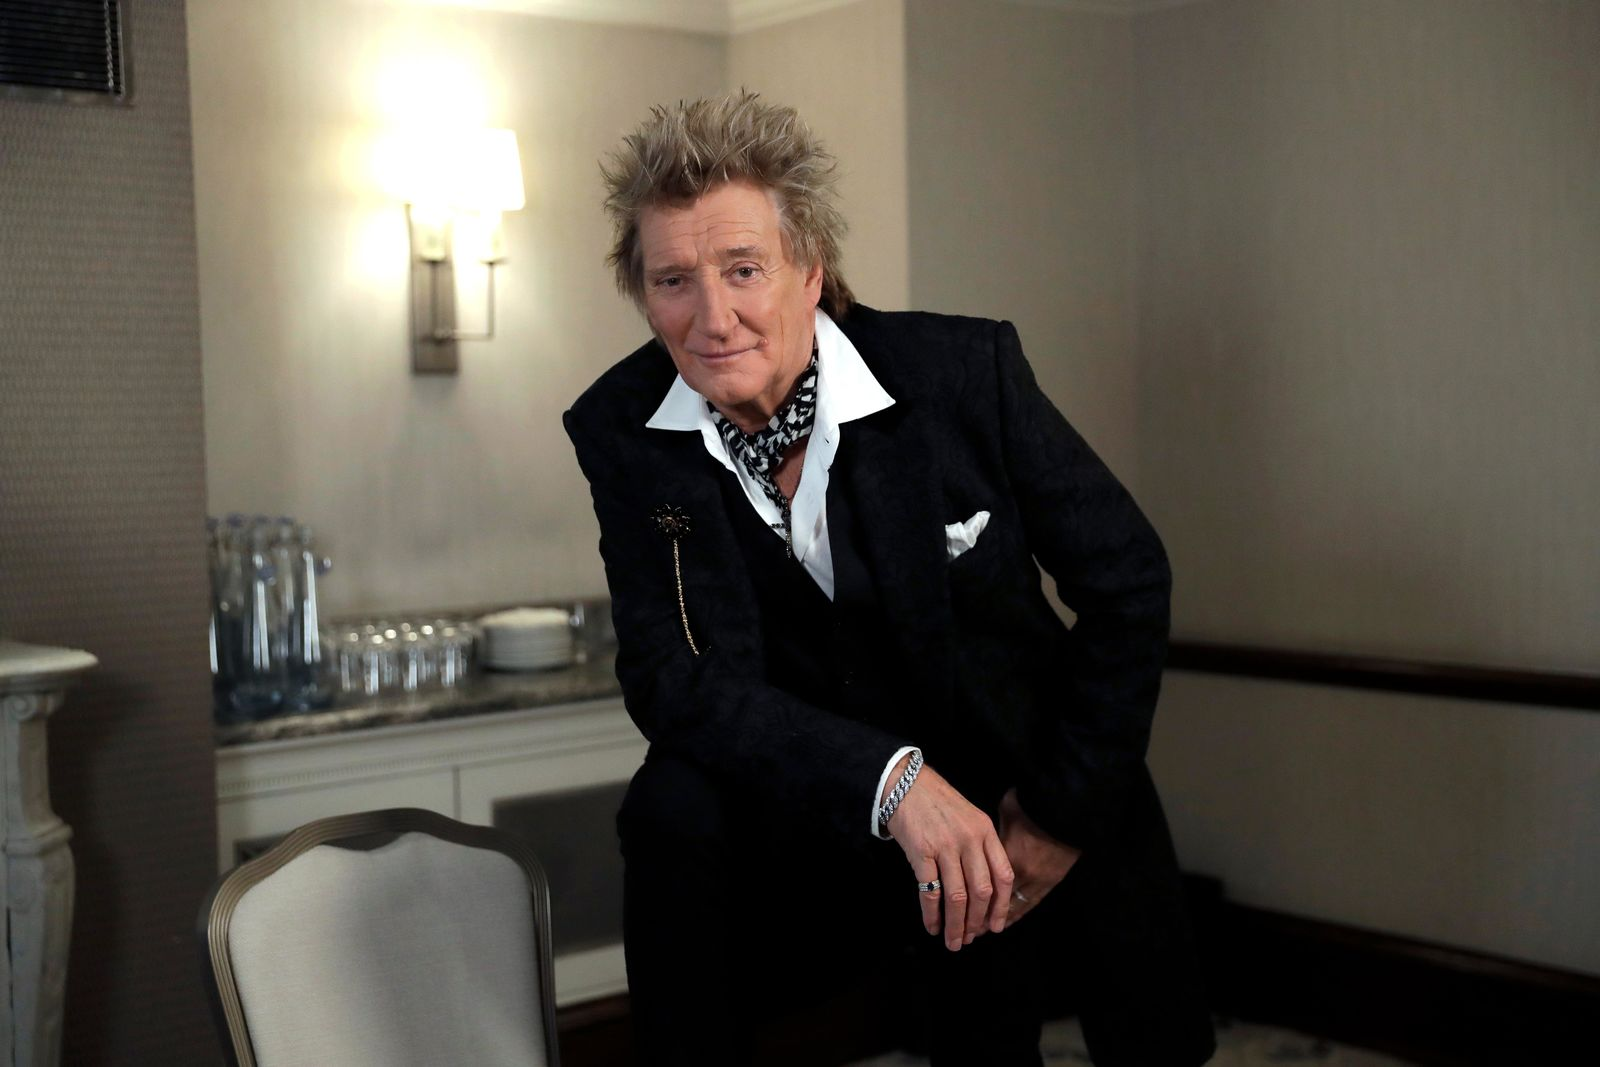 In this photo taken on Thursday, Nov. 14, 2019, British singer Rod Stewart poses for the media after an interview with The Associated Press at a hotel in London. Stewart, known for decades as a consummate crooner, rocker, fashion plate and tongue-in-cheek sex symbol, is adding a new element to his image: serious model railroad builder. The one time front man of The Faces who has hits dating back to the 1960s has put the finishing touch on a 23-year project that has landed him on the cover of Railway Modeller magazine, a far cry from Rolling Stone, whose cover he has graced many times. (AP Photo/Matt Dunham)